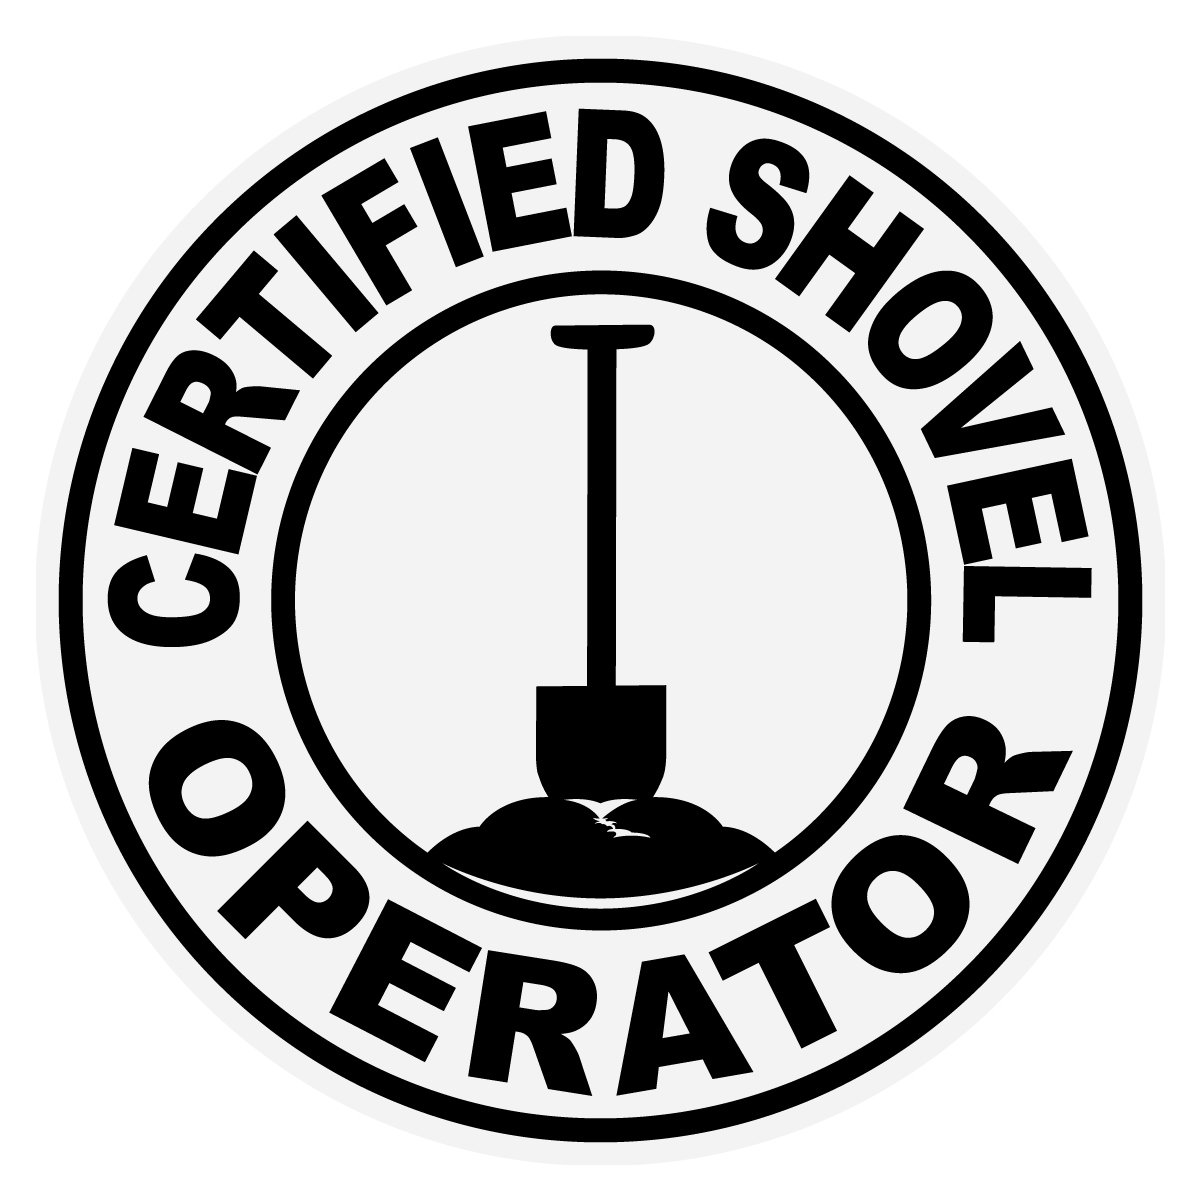 Funny Hard Hat Sticker - Certified Shovel Operator Small Round Reflective Decal Sticker